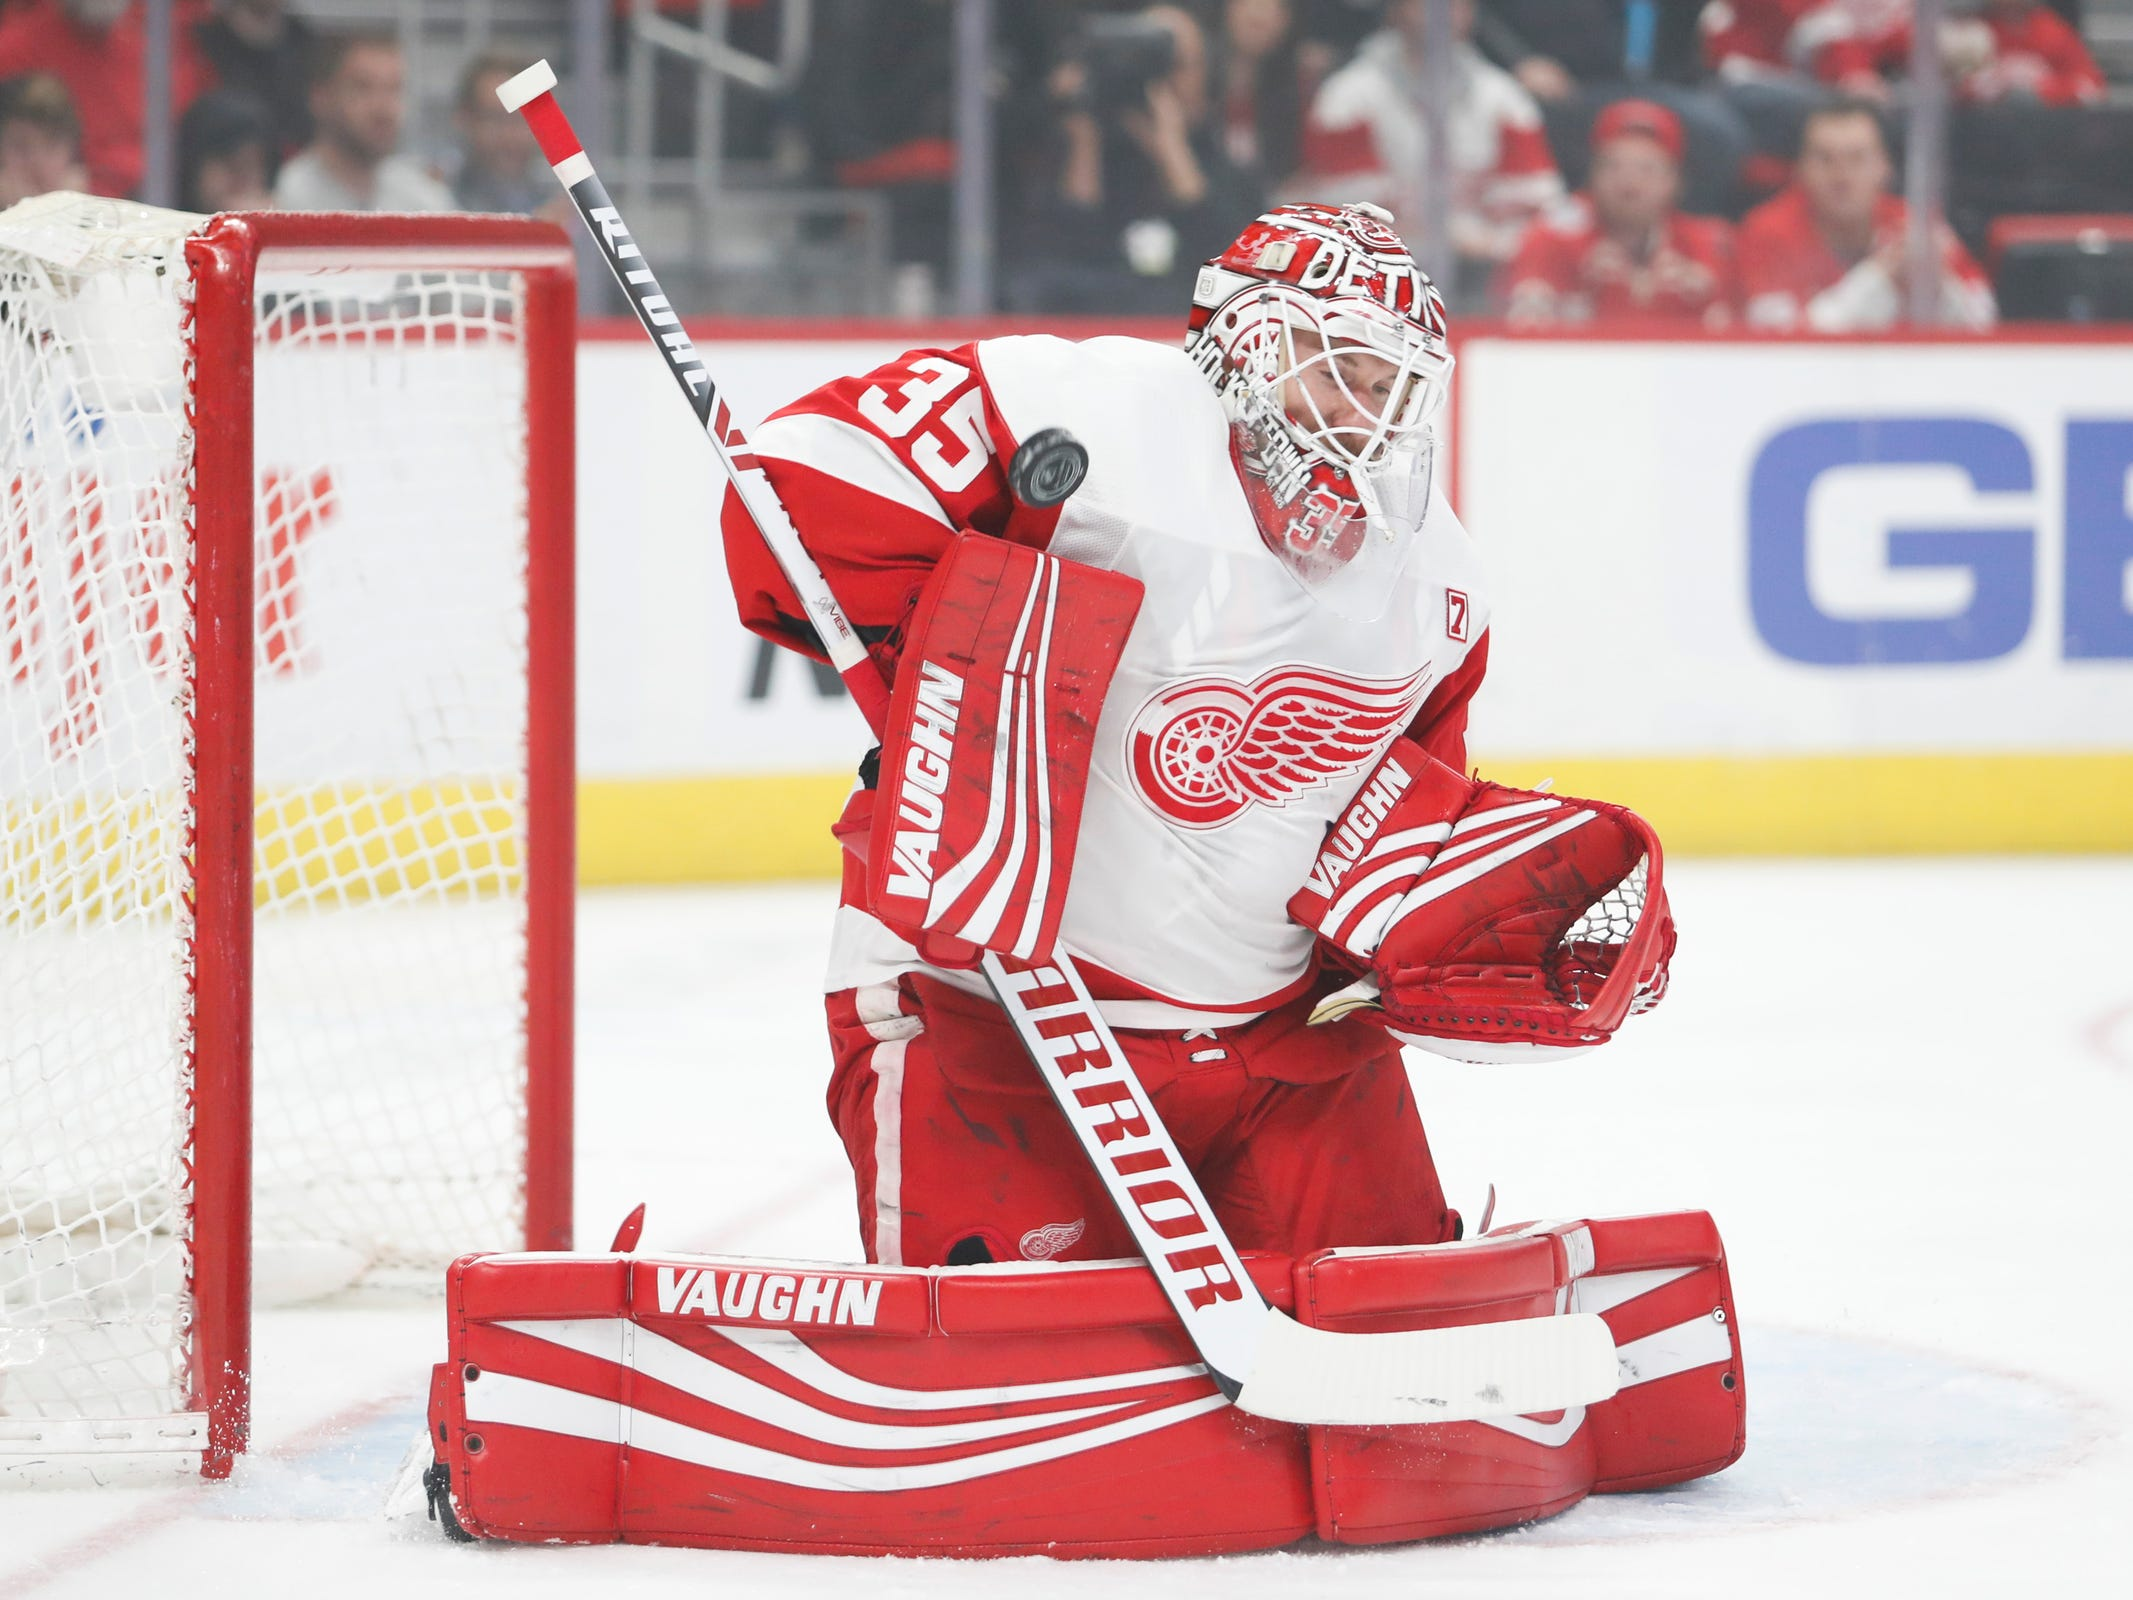 Detroit Red Wings goaltender Jimmy Howard (35) makes a save during the first period against the Tampa Bay Lightning at Little Caesars Arena on Thursday, March 14, 2019, in Detroit.